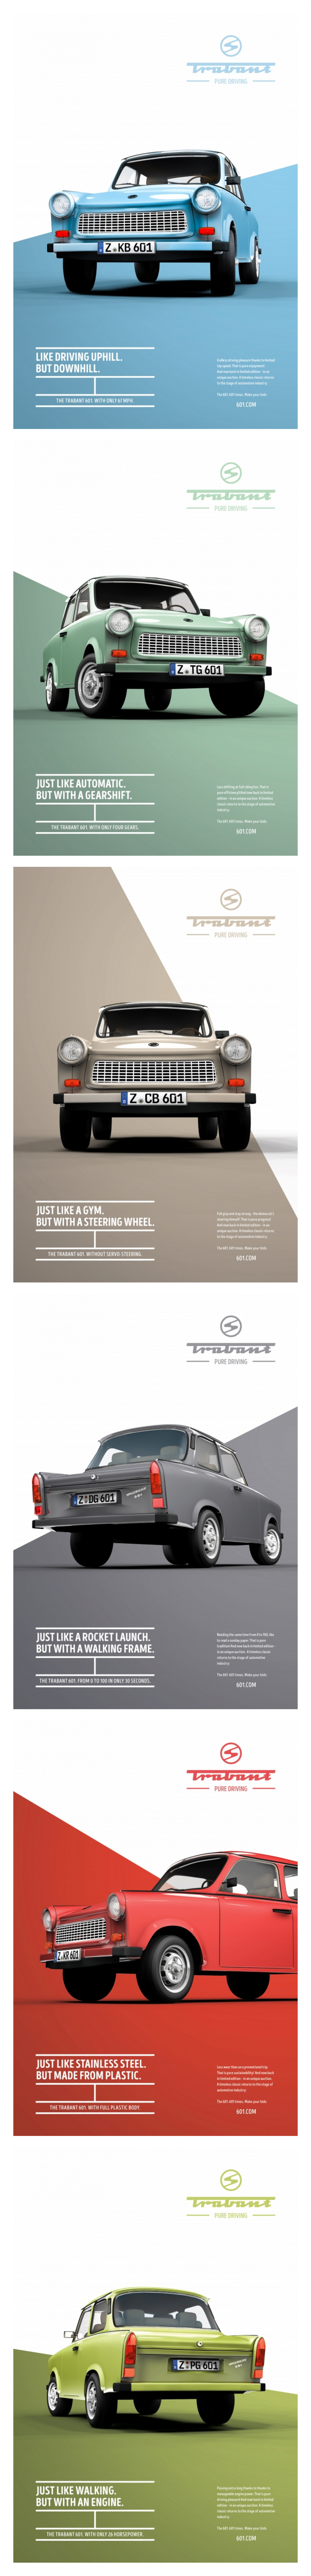 Trabant 601: Pure driving | design by Institute of Design, Düsseldorf, Germany